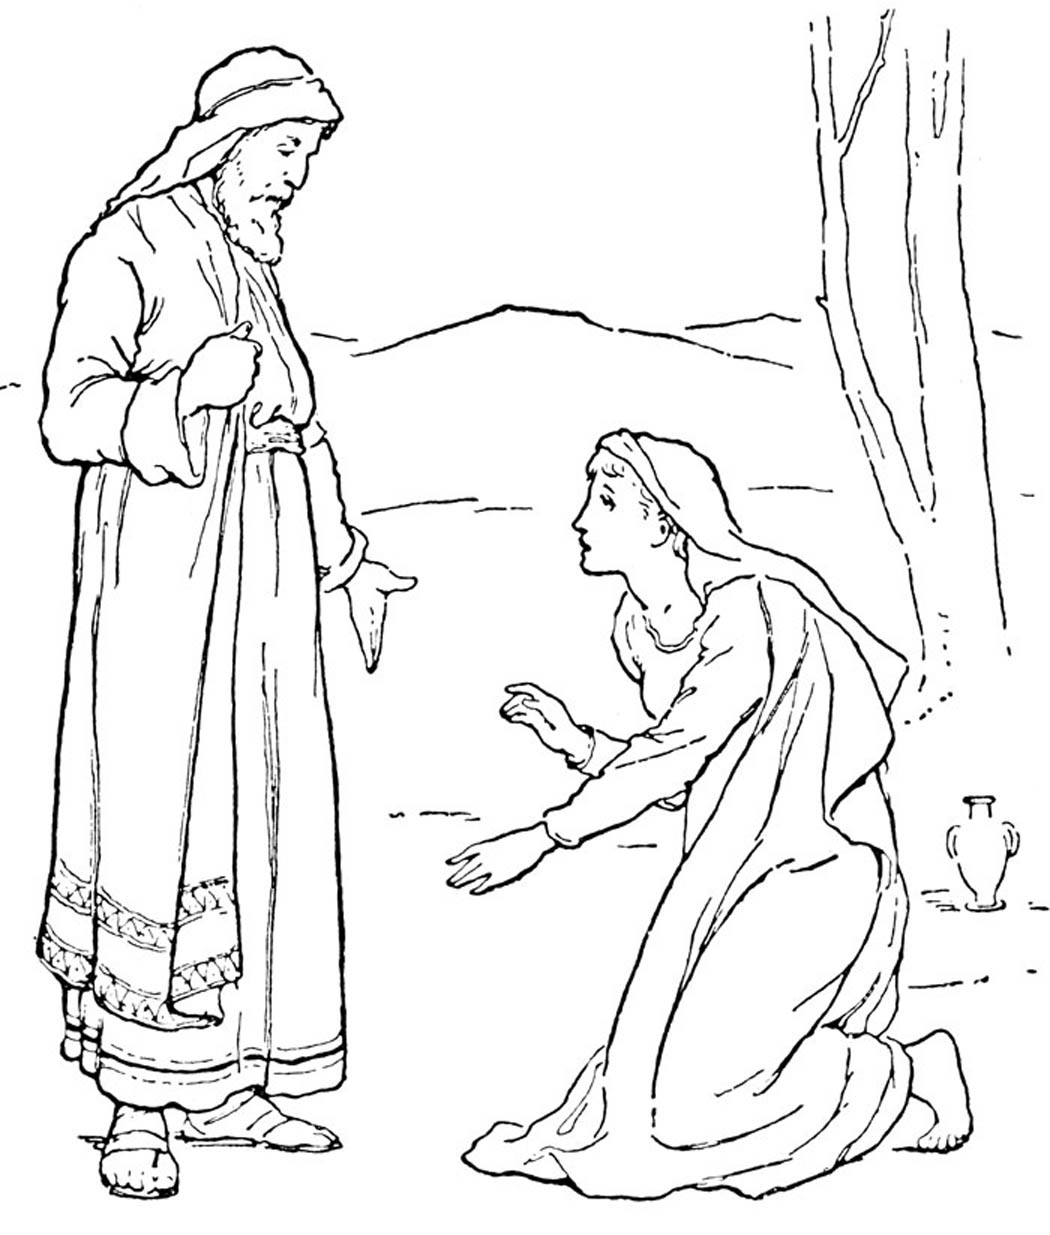 coloring pages of bible characters - photo#26